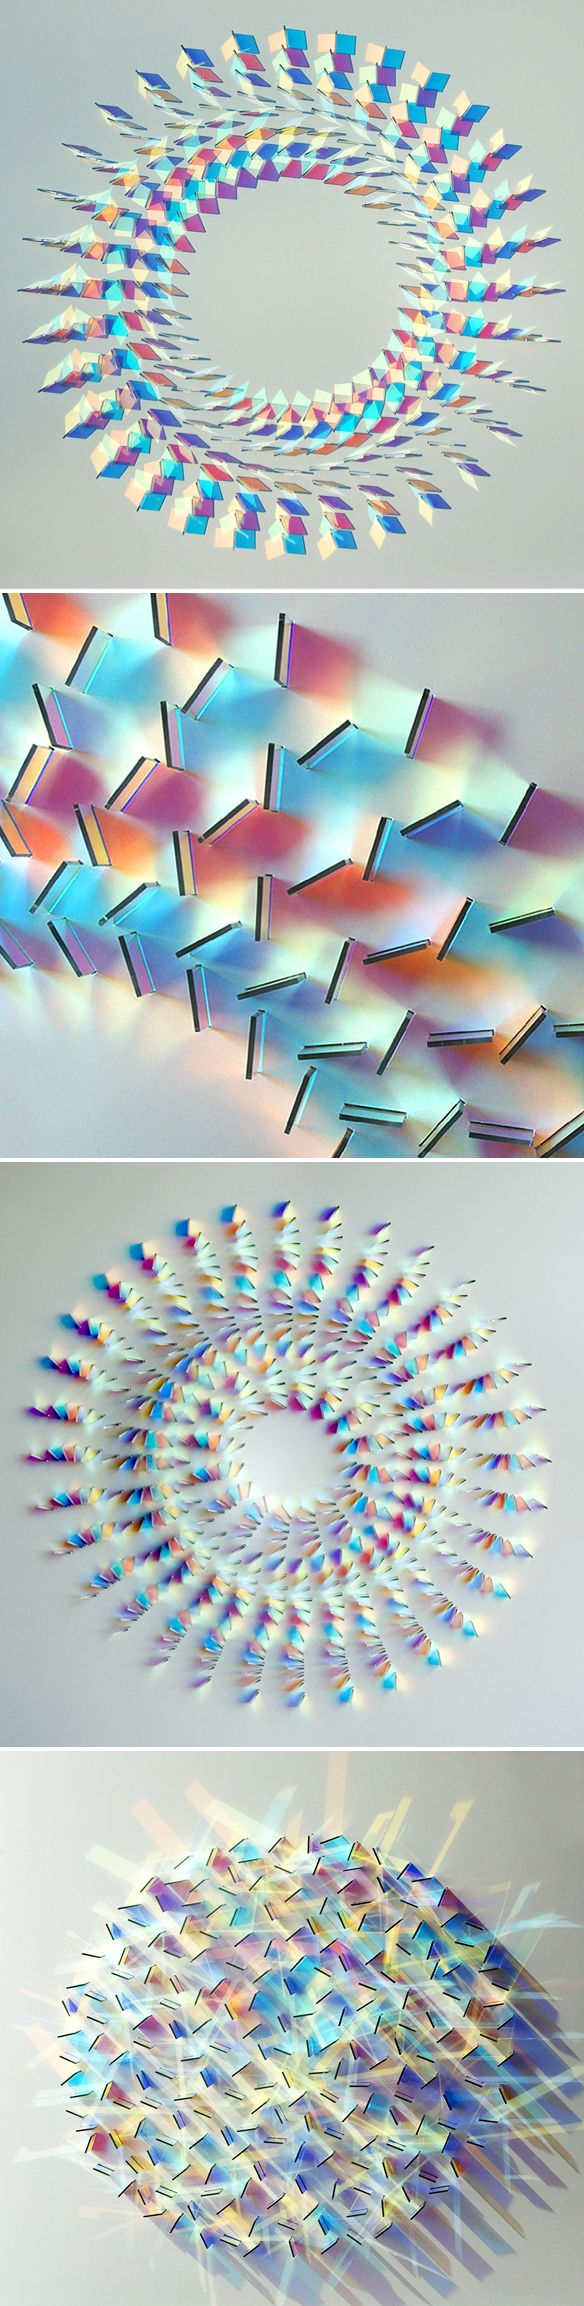 "These are glass wall panel installations by UK based artist Chris Wood. She says that her work is about expressing the ""magic of light""."